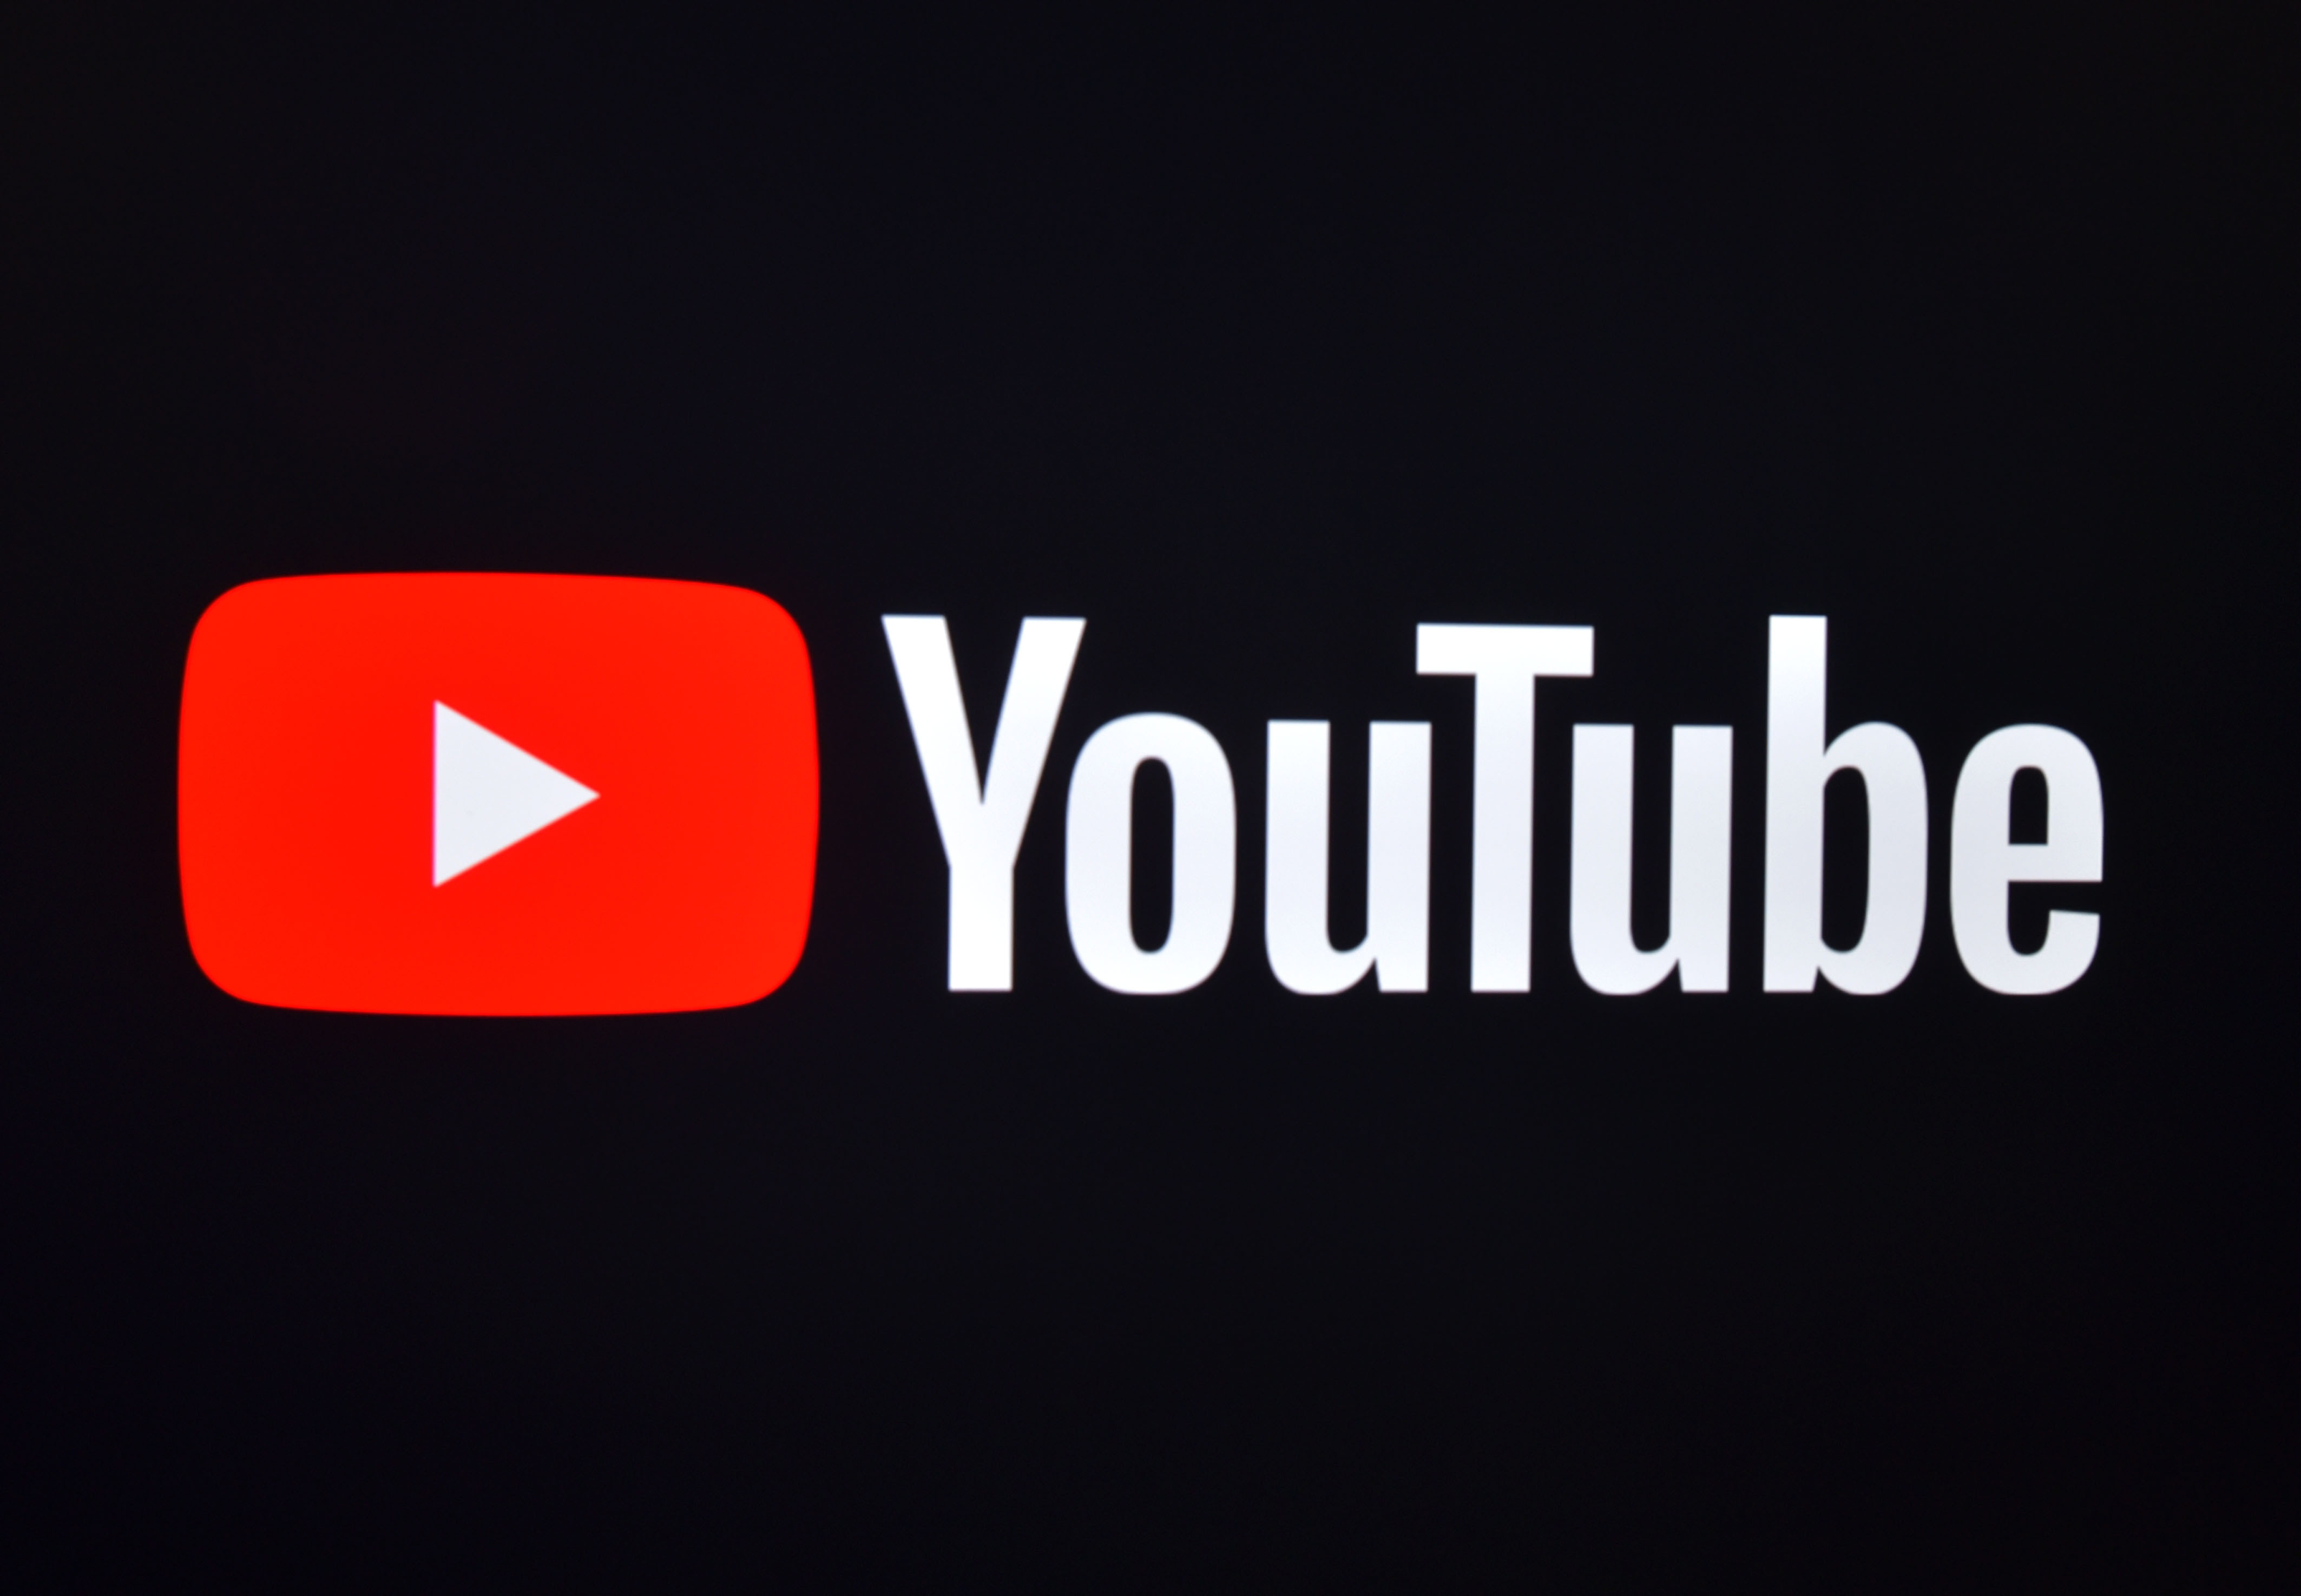 YouTube's Crypto-purge Opens Discussions for a Decentralized Alternative